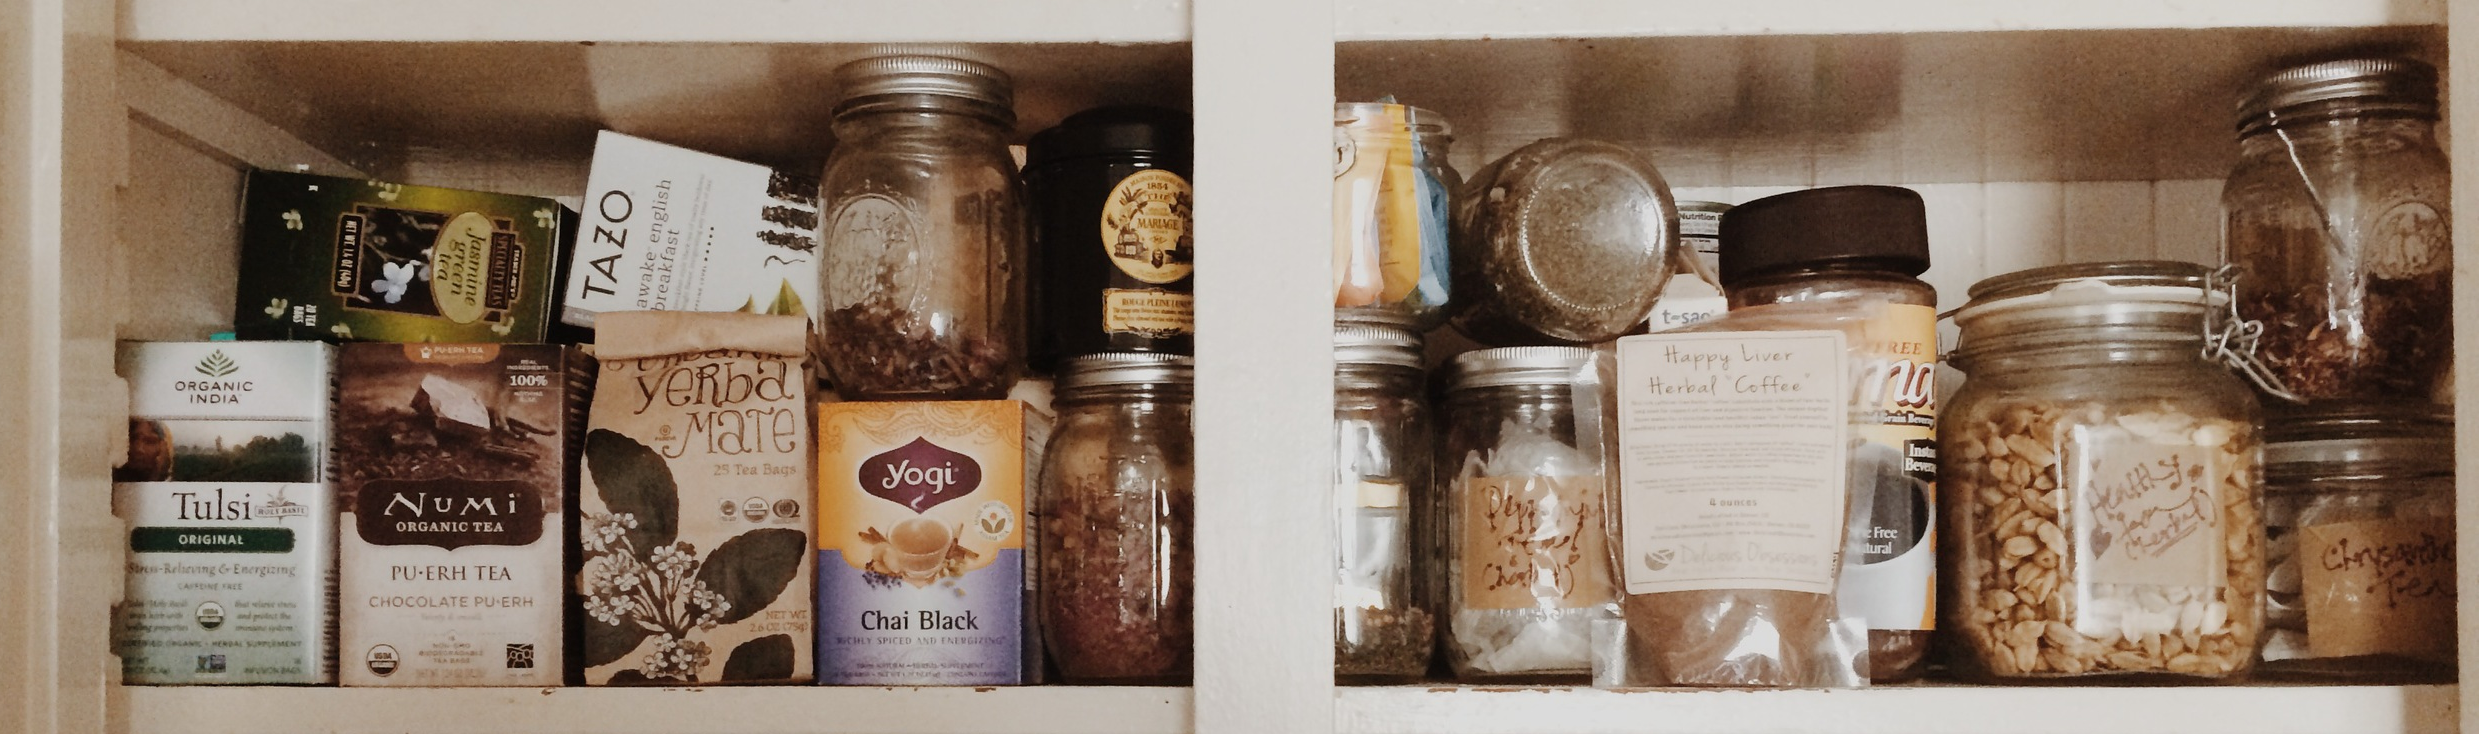 My tea shelf.